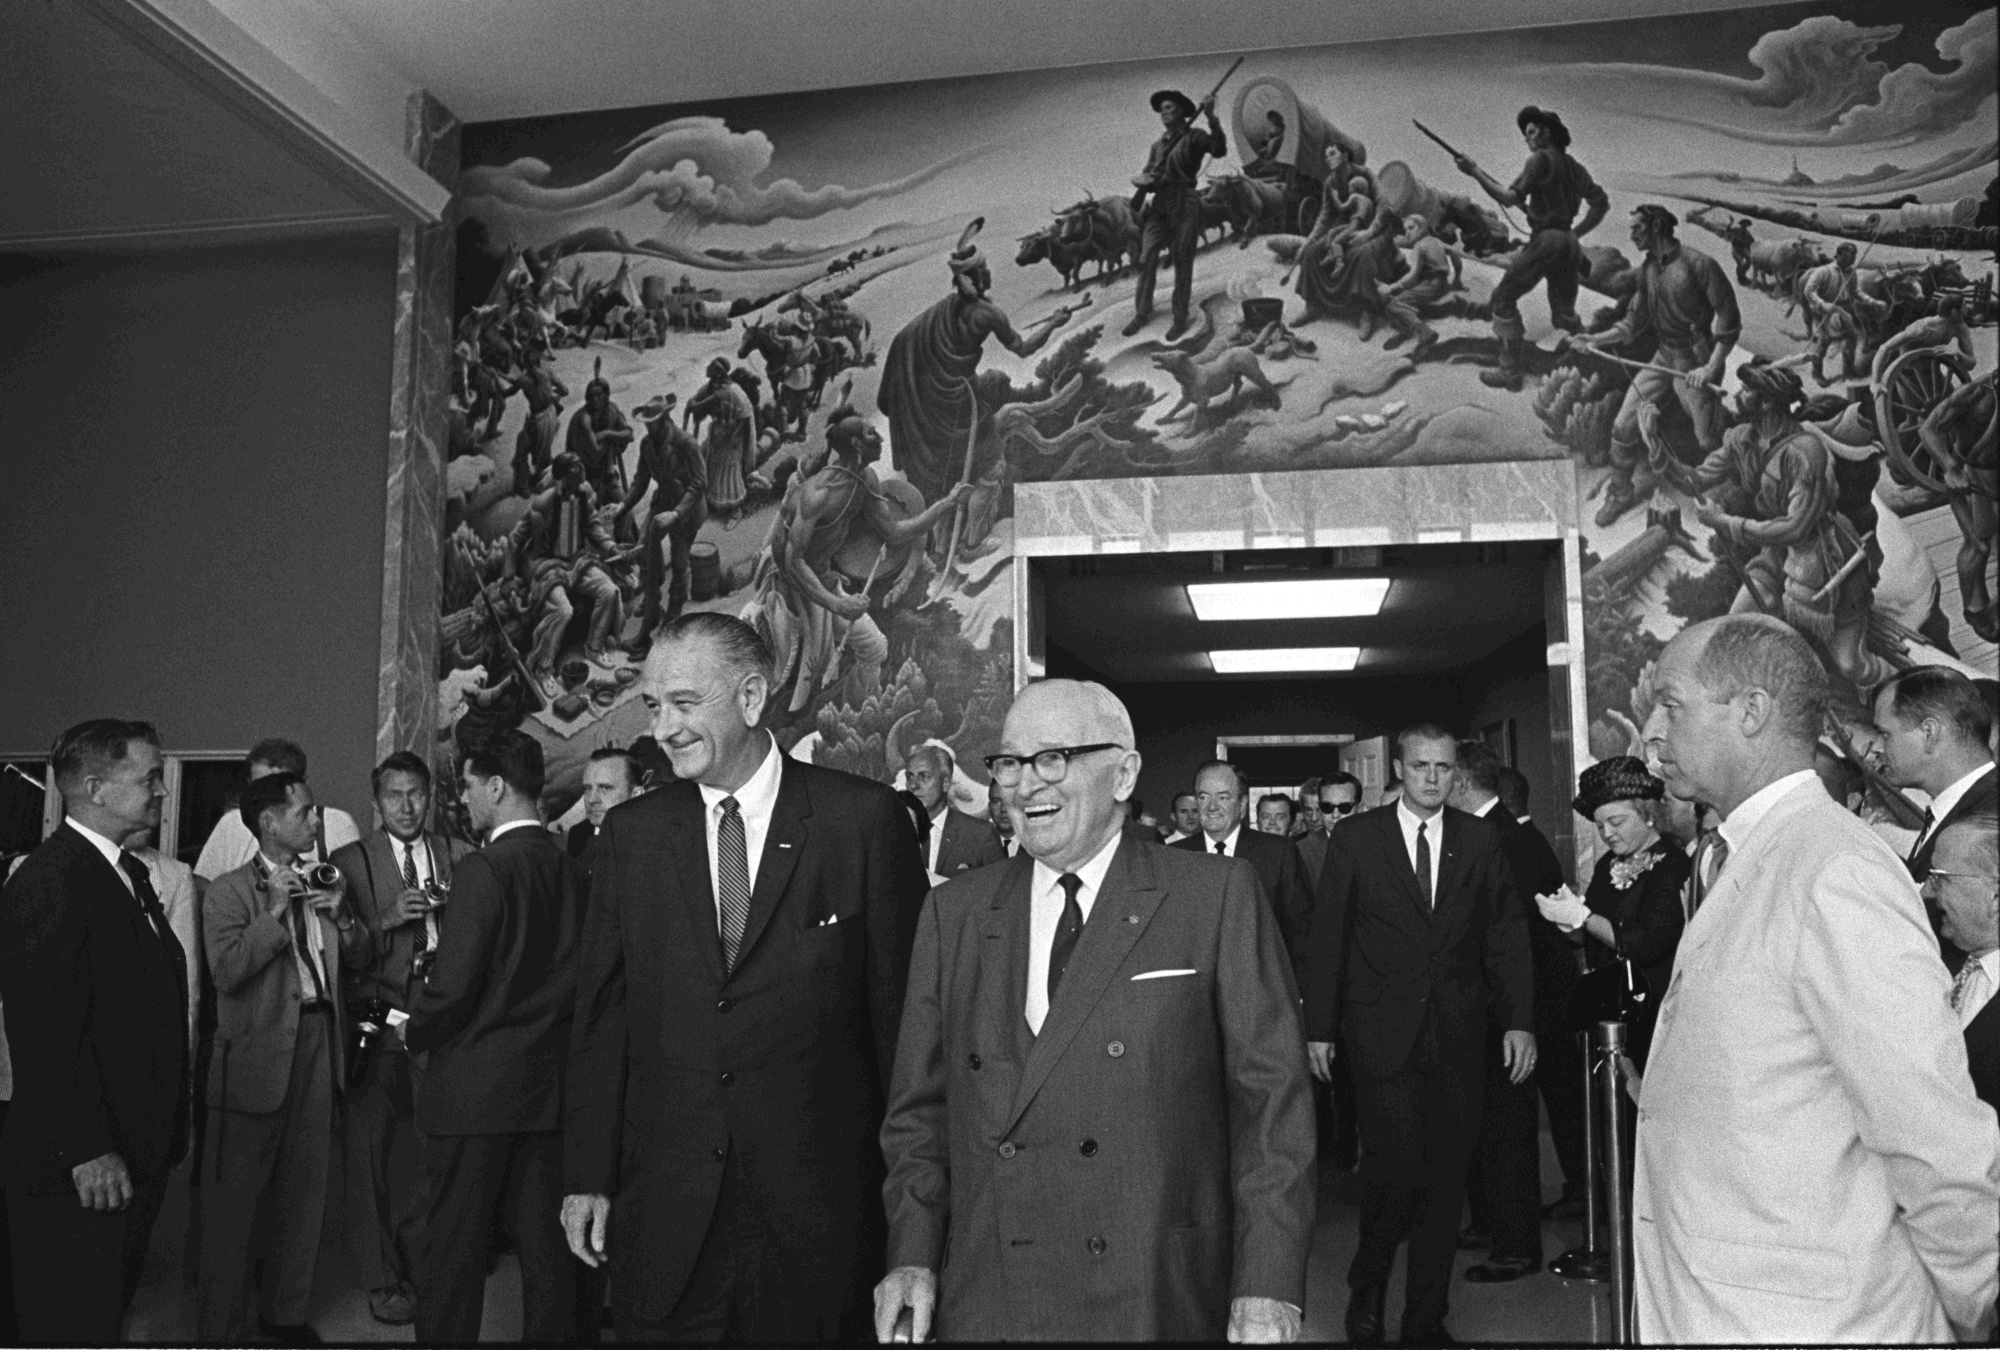 U.S. President Lyndon Johnson, former president Harry S. Truman, and others walk through the Harry S. Truman Library and Museum during the Medicare Bill signing event. LBJ Library photo by Yoichi Okamoto, A986-26a. Taken July 30, 1965.